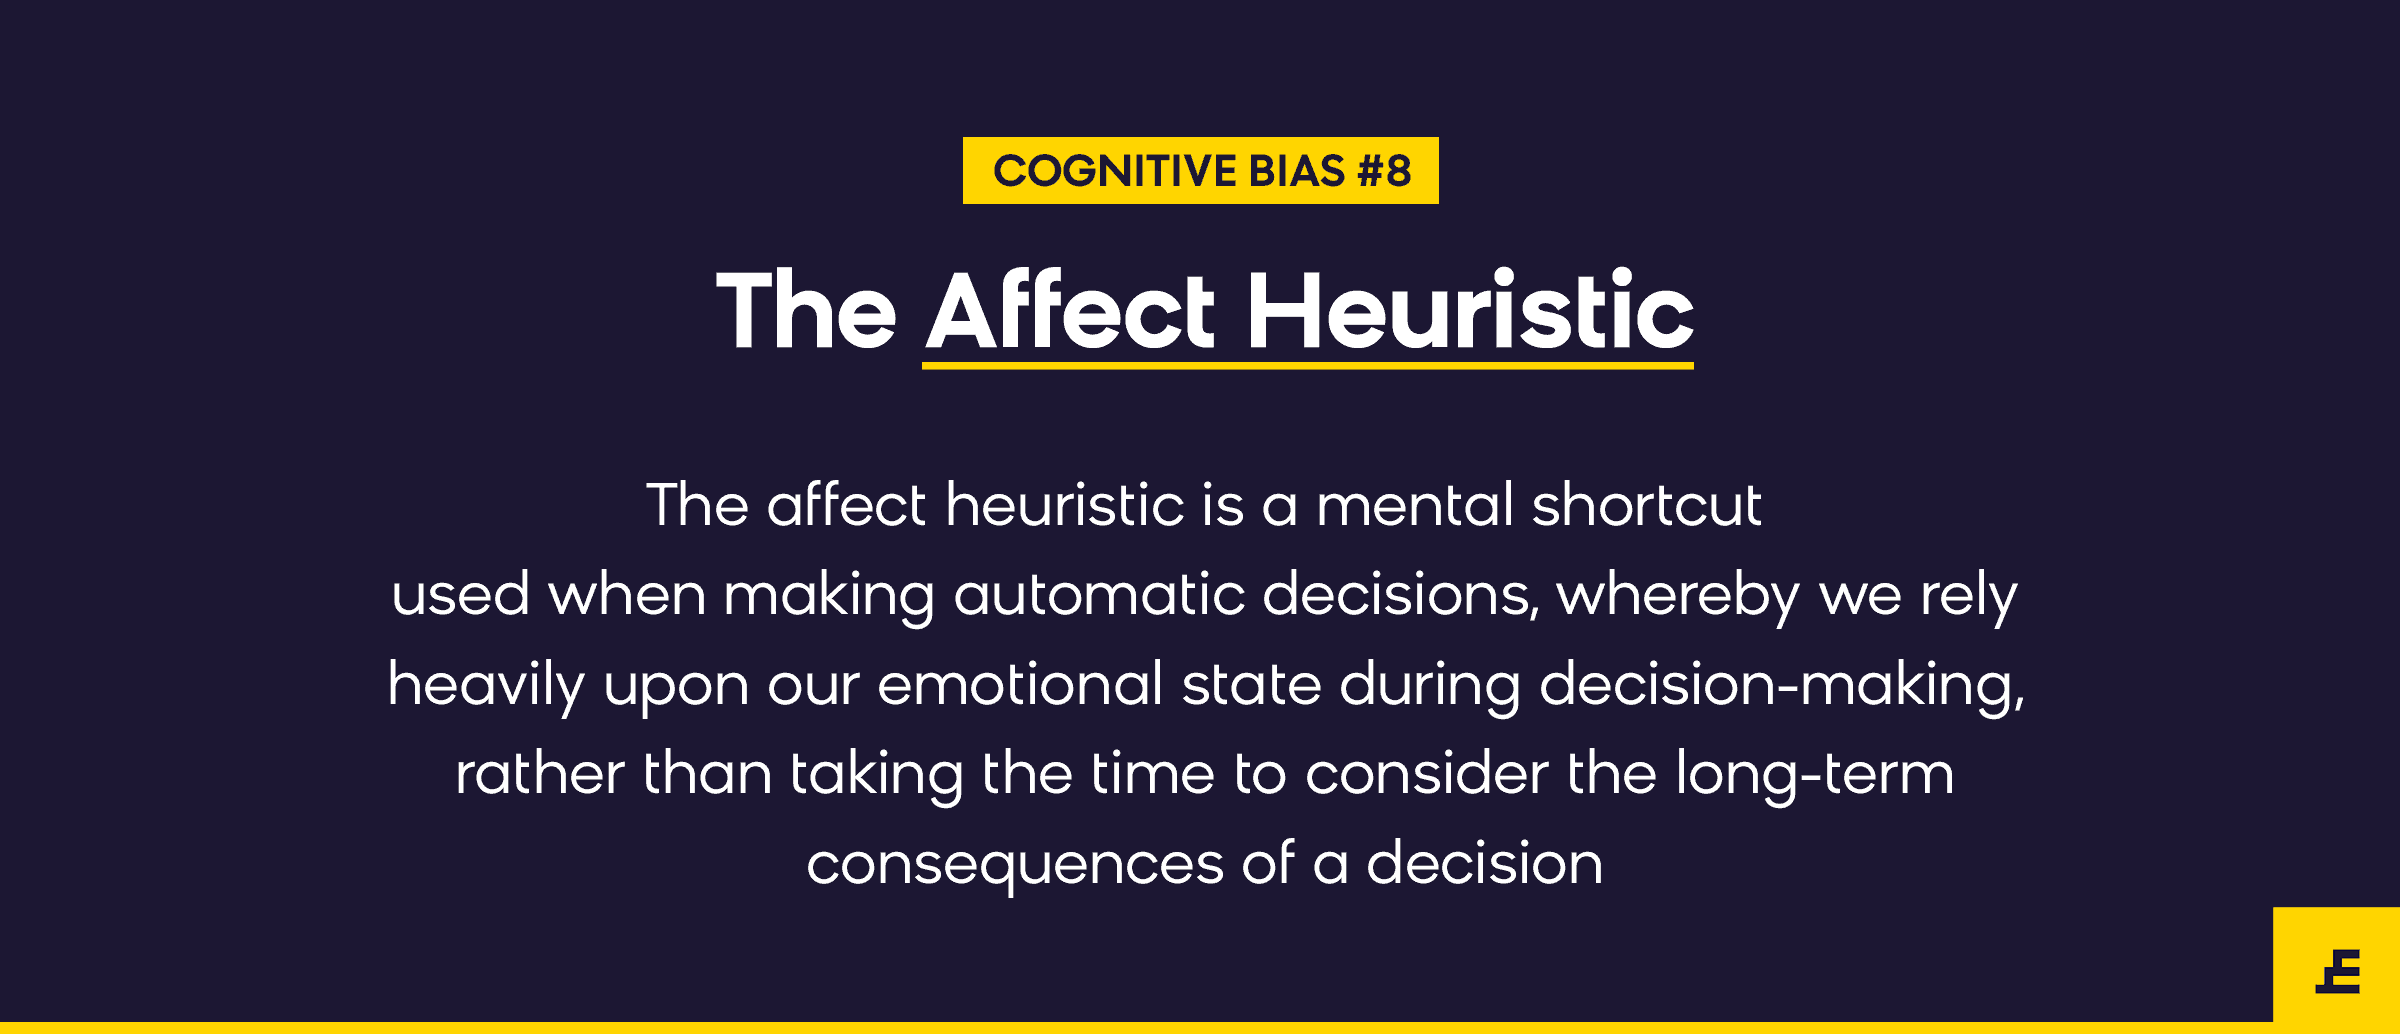 cognitive bias - the affect heuristic